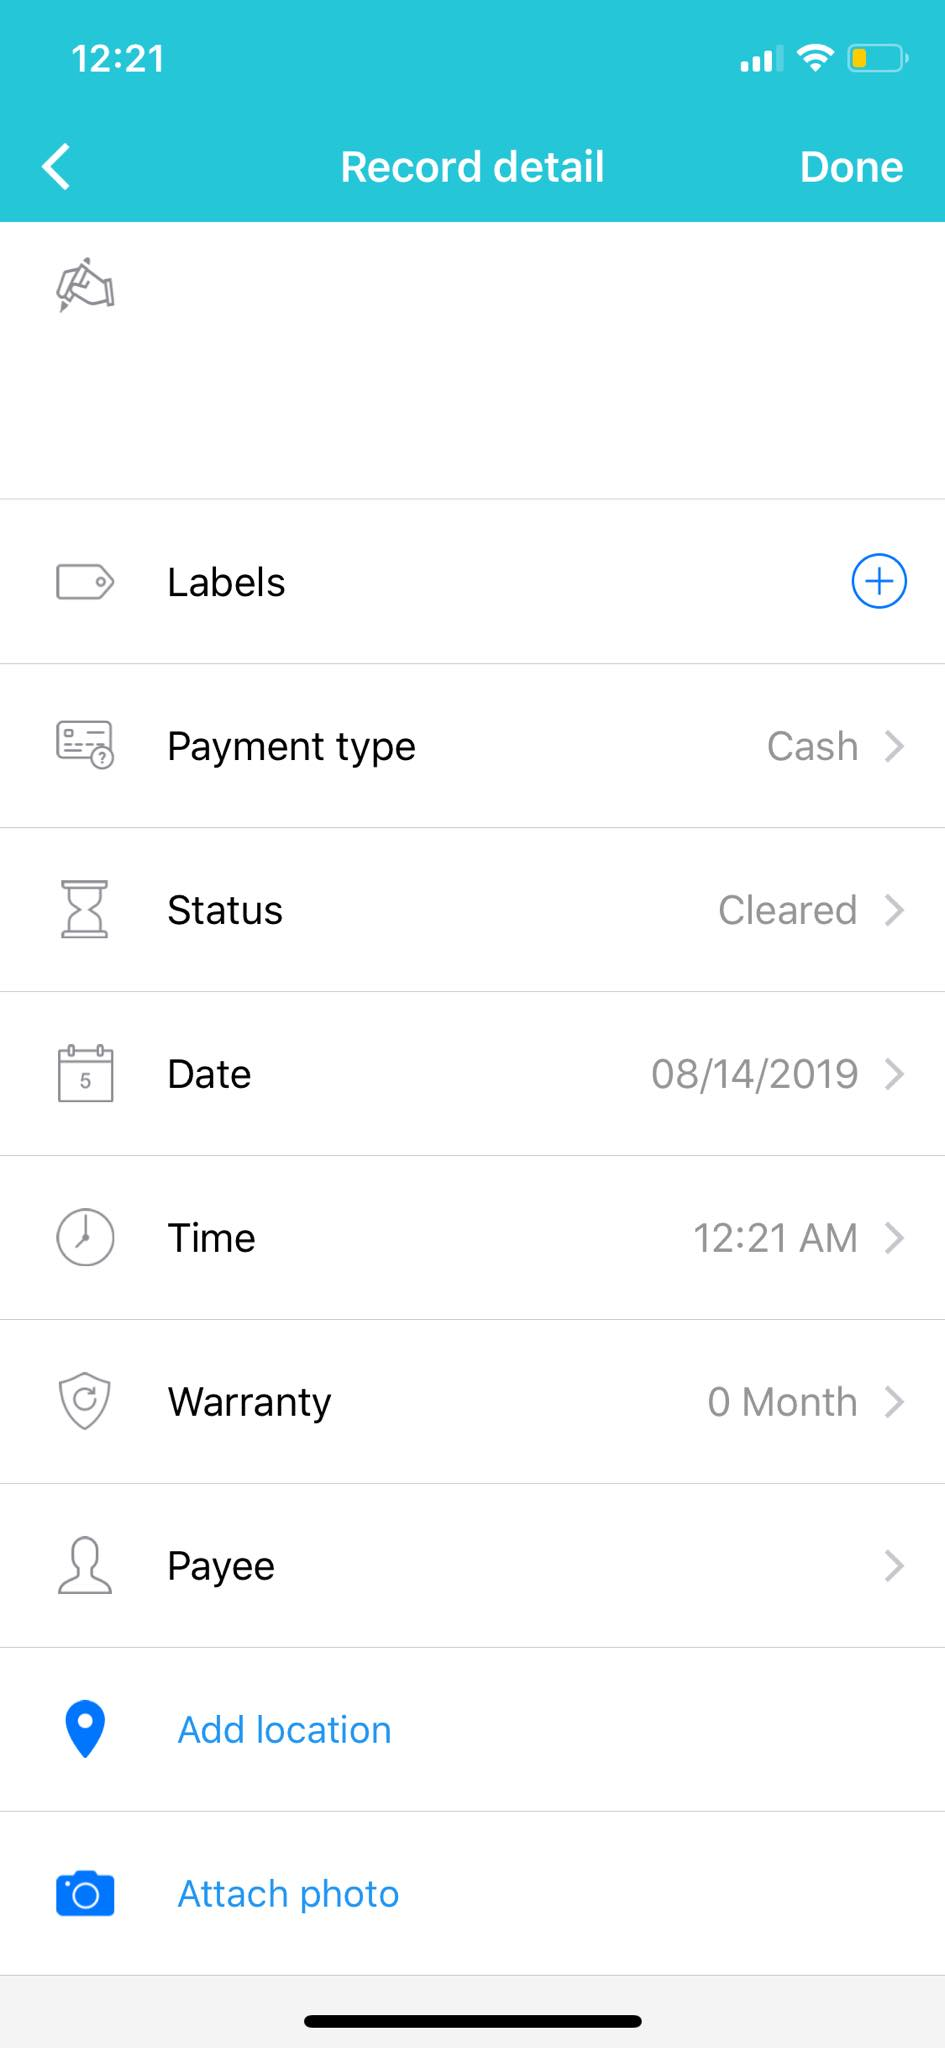 Record Detail on iOS by Wallet